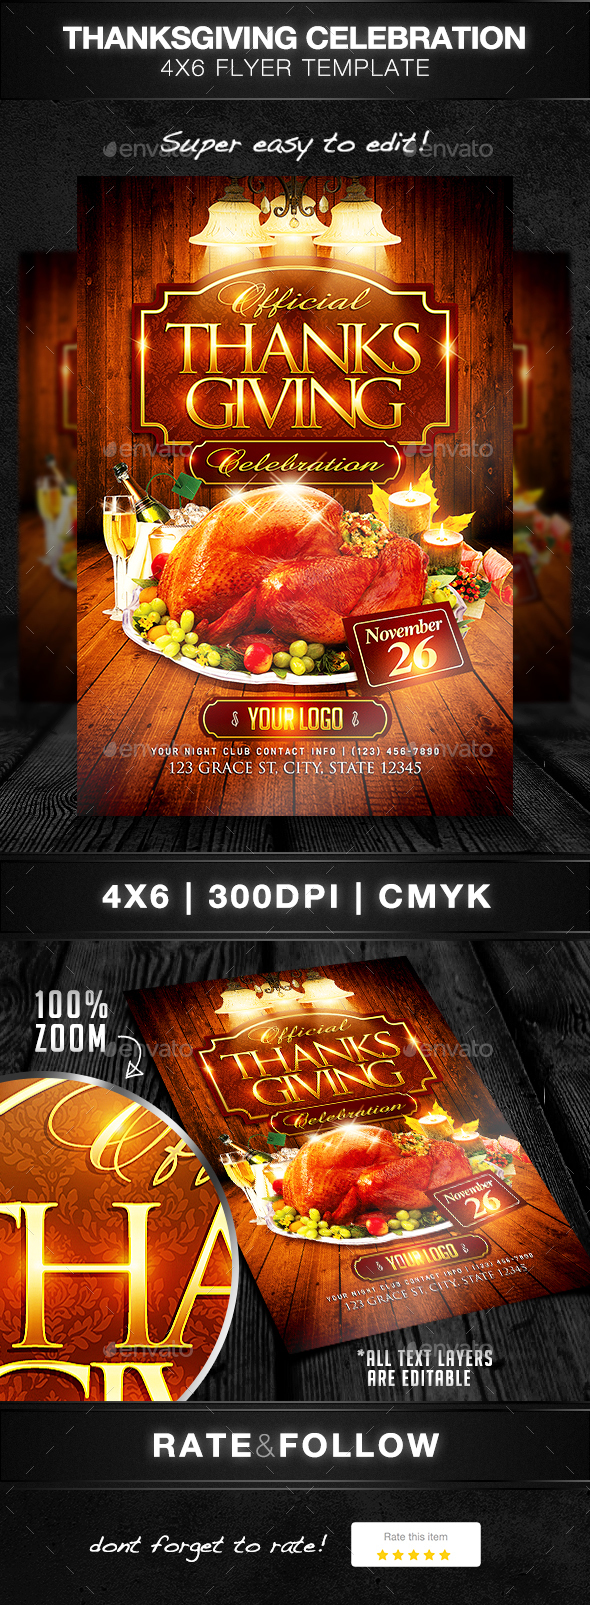 Thanksgiving Celebration Flyer Template - Holidays Events